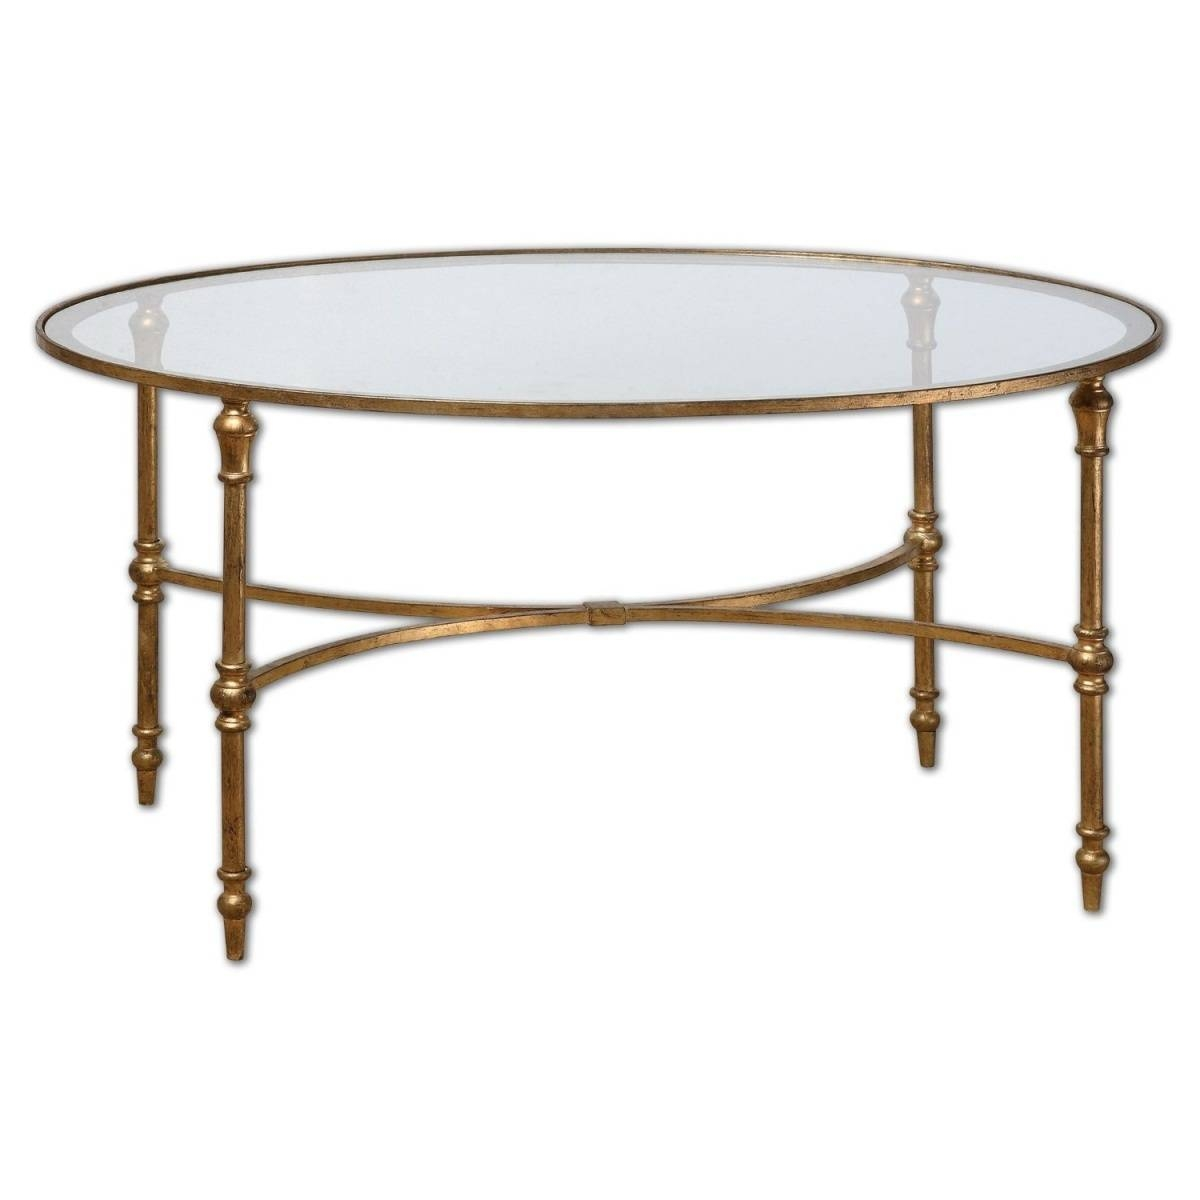 Oval Glass And Metal Coffee Tables | Coffee Tables Decoration With Oval Glass Coffee Tables (View 4 of 30)